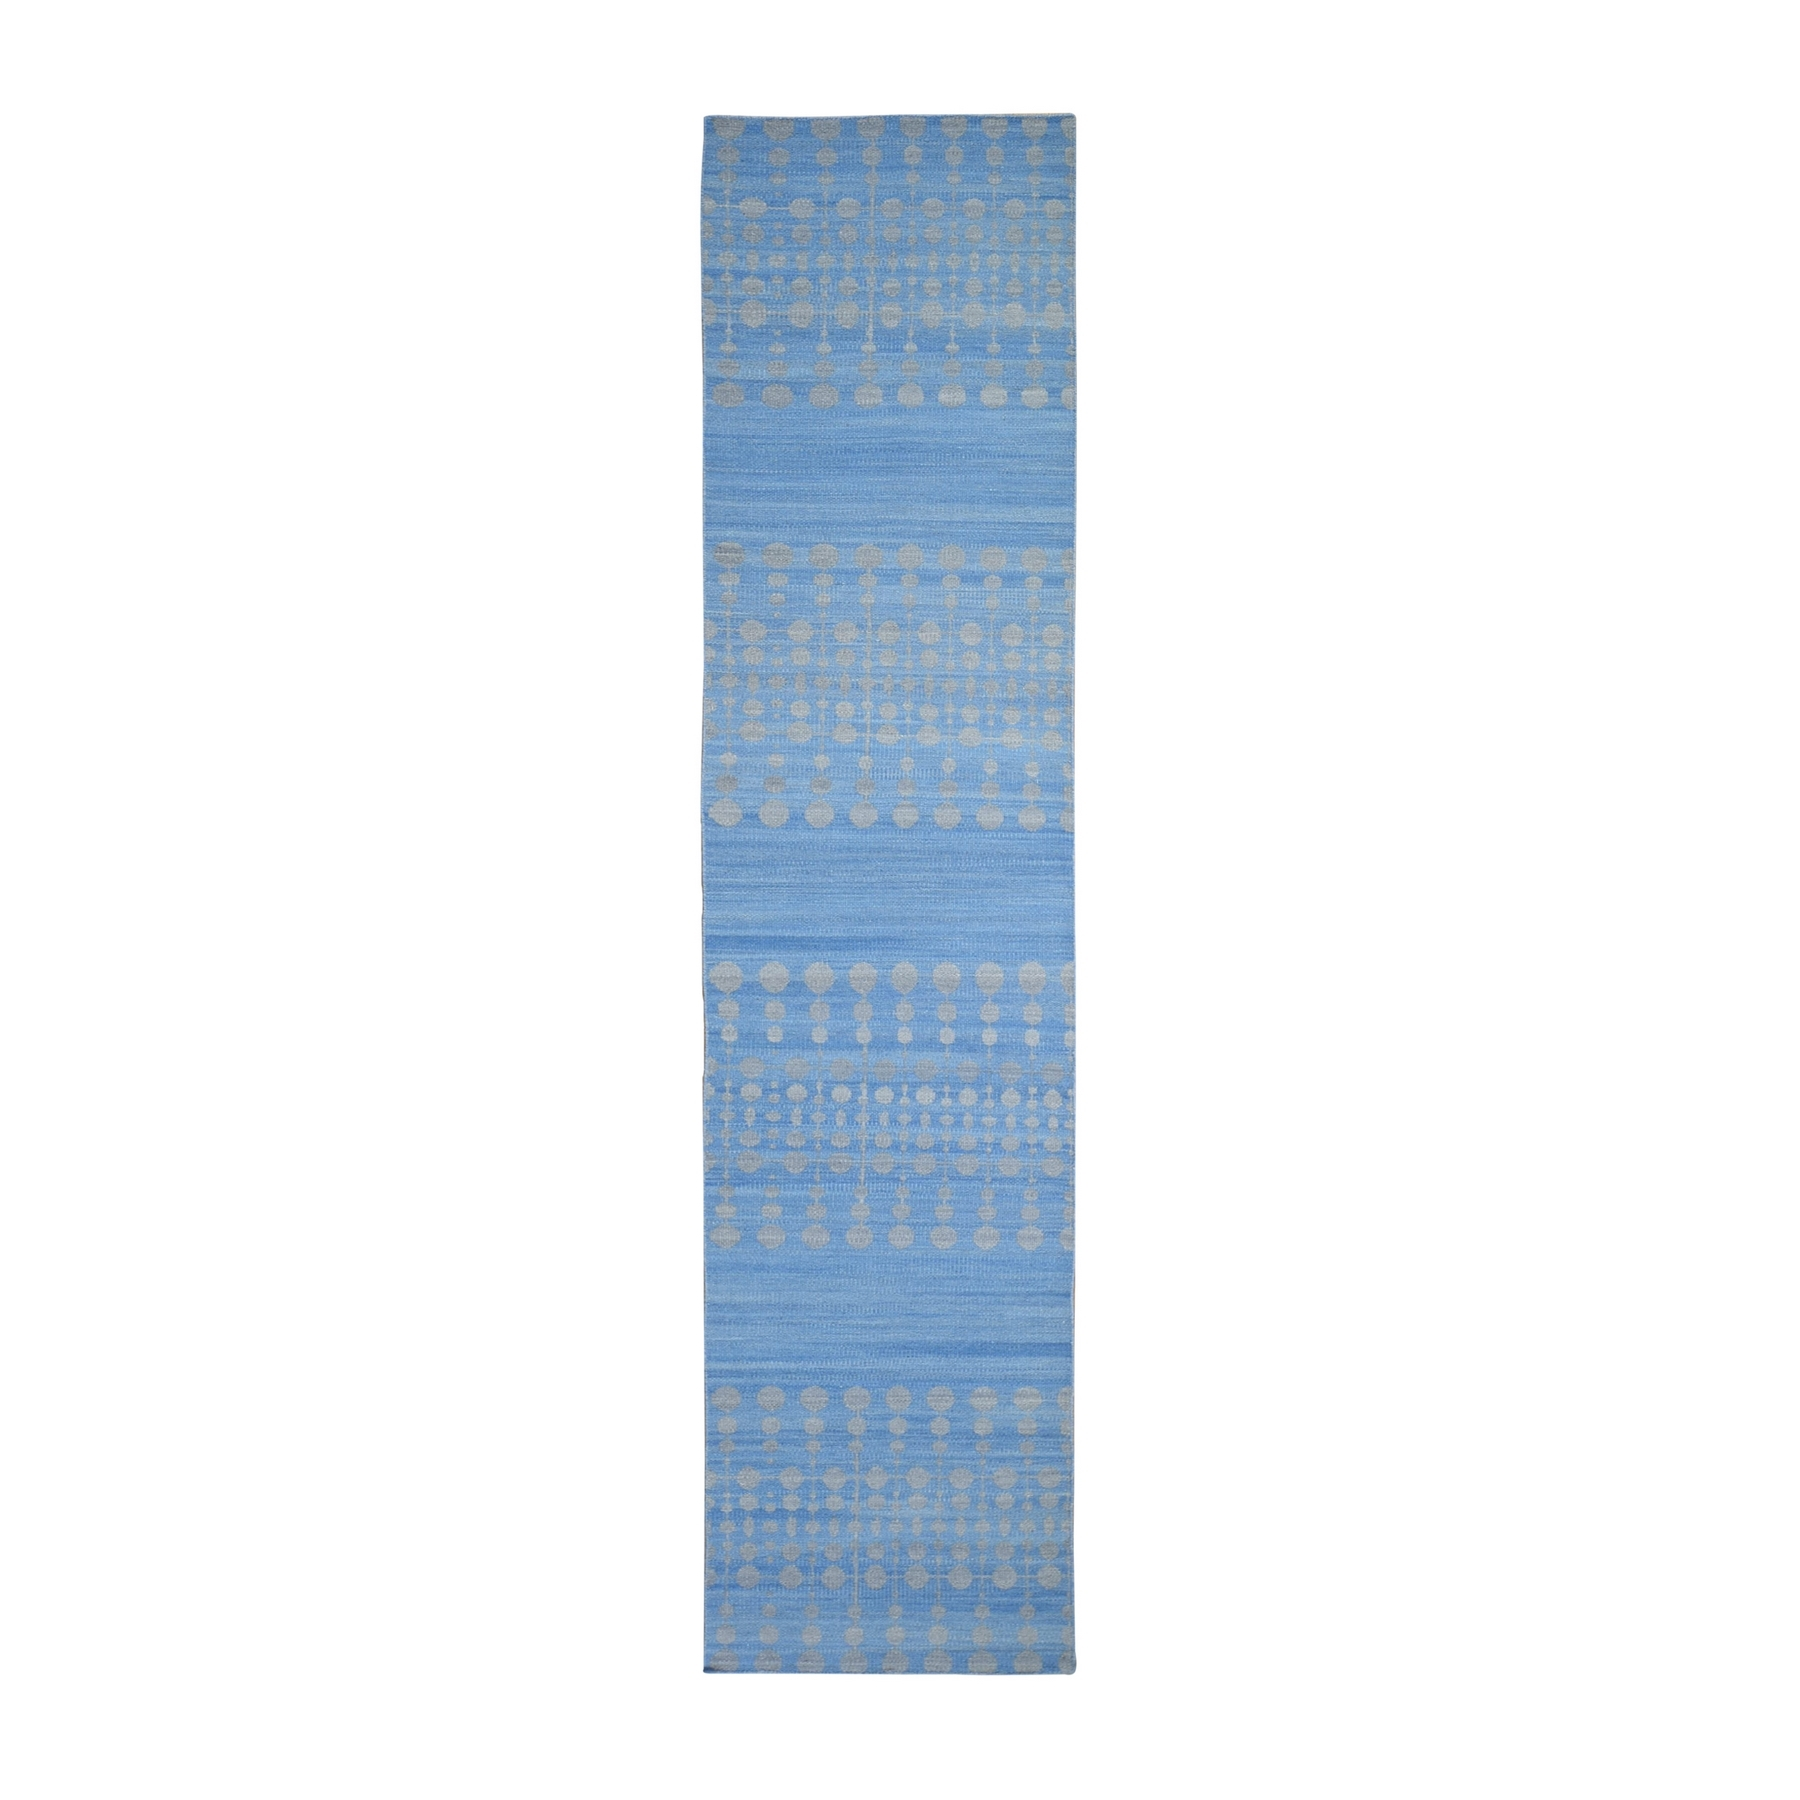 "2'8""x12' Light Blue Hand Woven Flat Weave Dot Design Pure Wool Reversible Kilim Runner Oriental Rug"